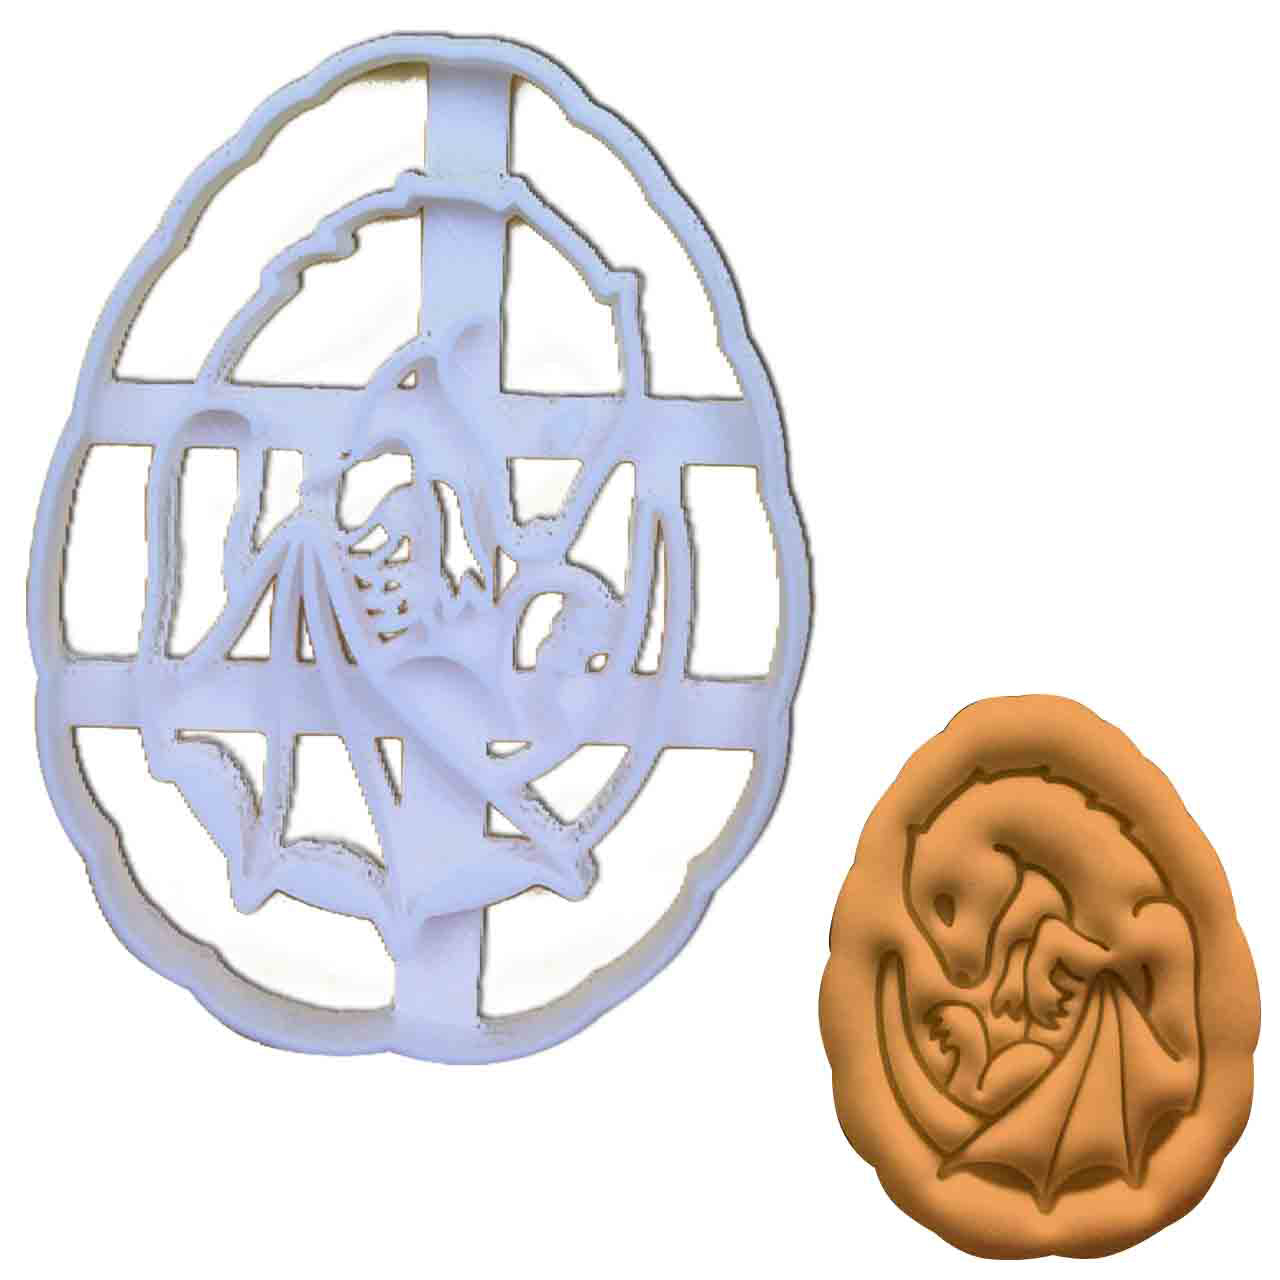 dragon baby fetus cookie cutter